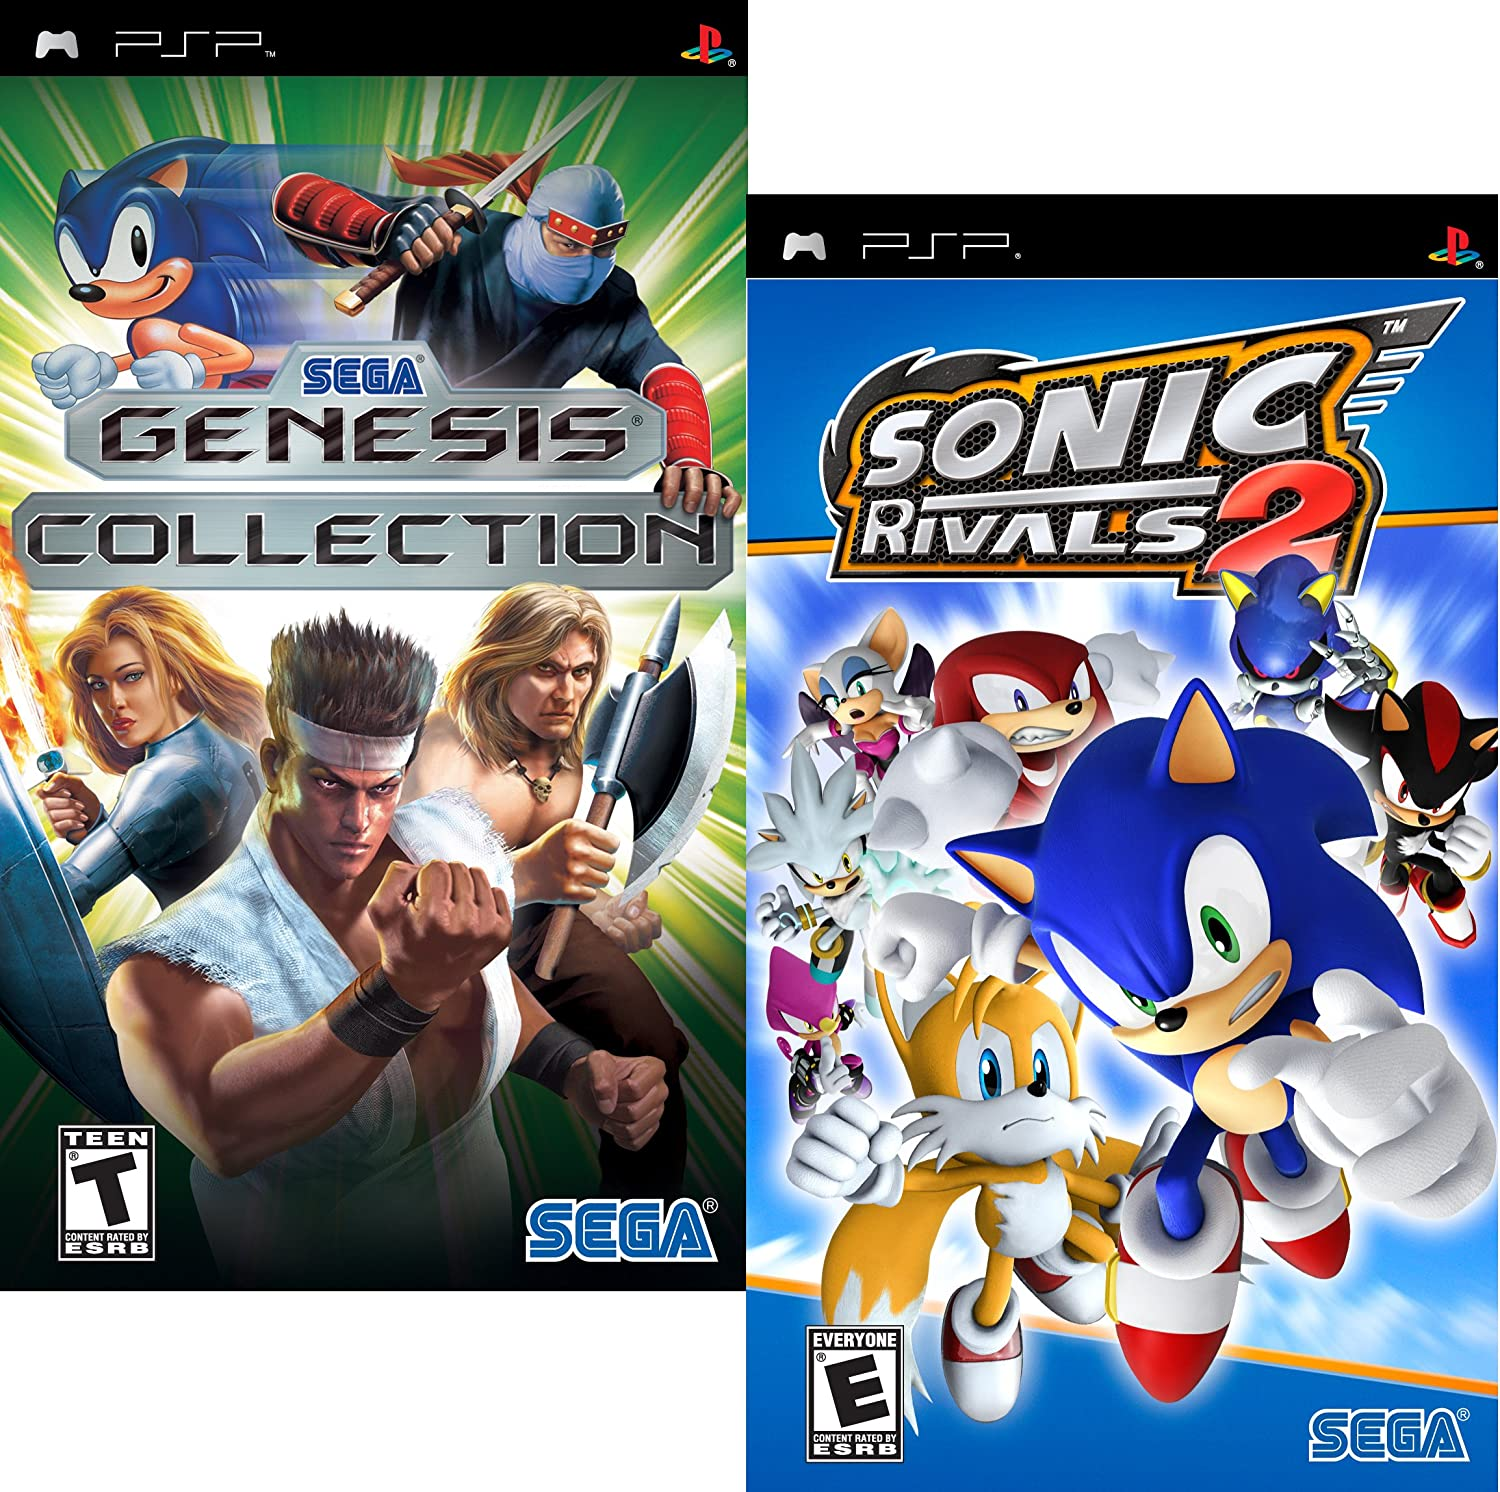 Buy Sega Fun Pack Featuring Sonic Rivals 2 And Sega Genesis